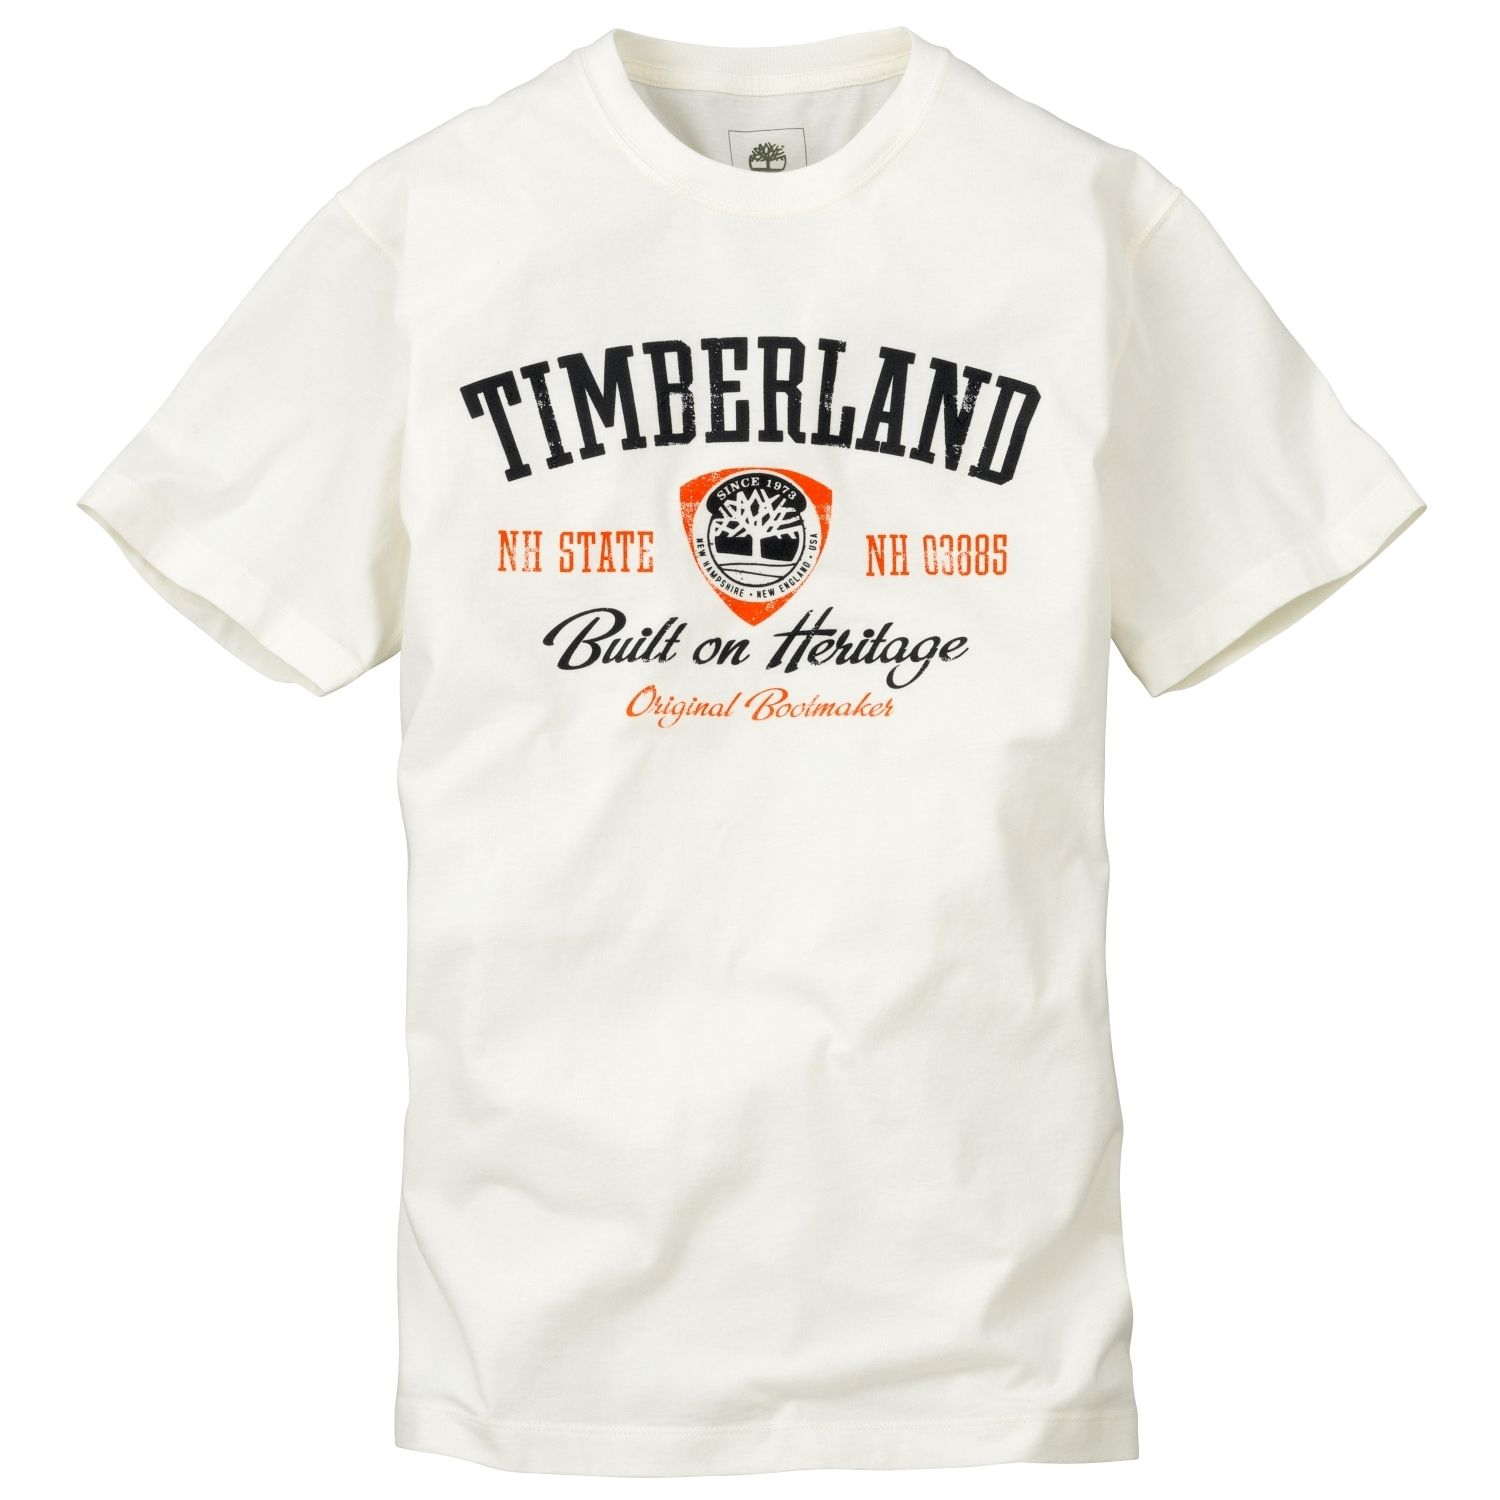 009d09fc Timberland Men's Earthkeepers Built on Heritage T Shirt Style 2753J | eBay